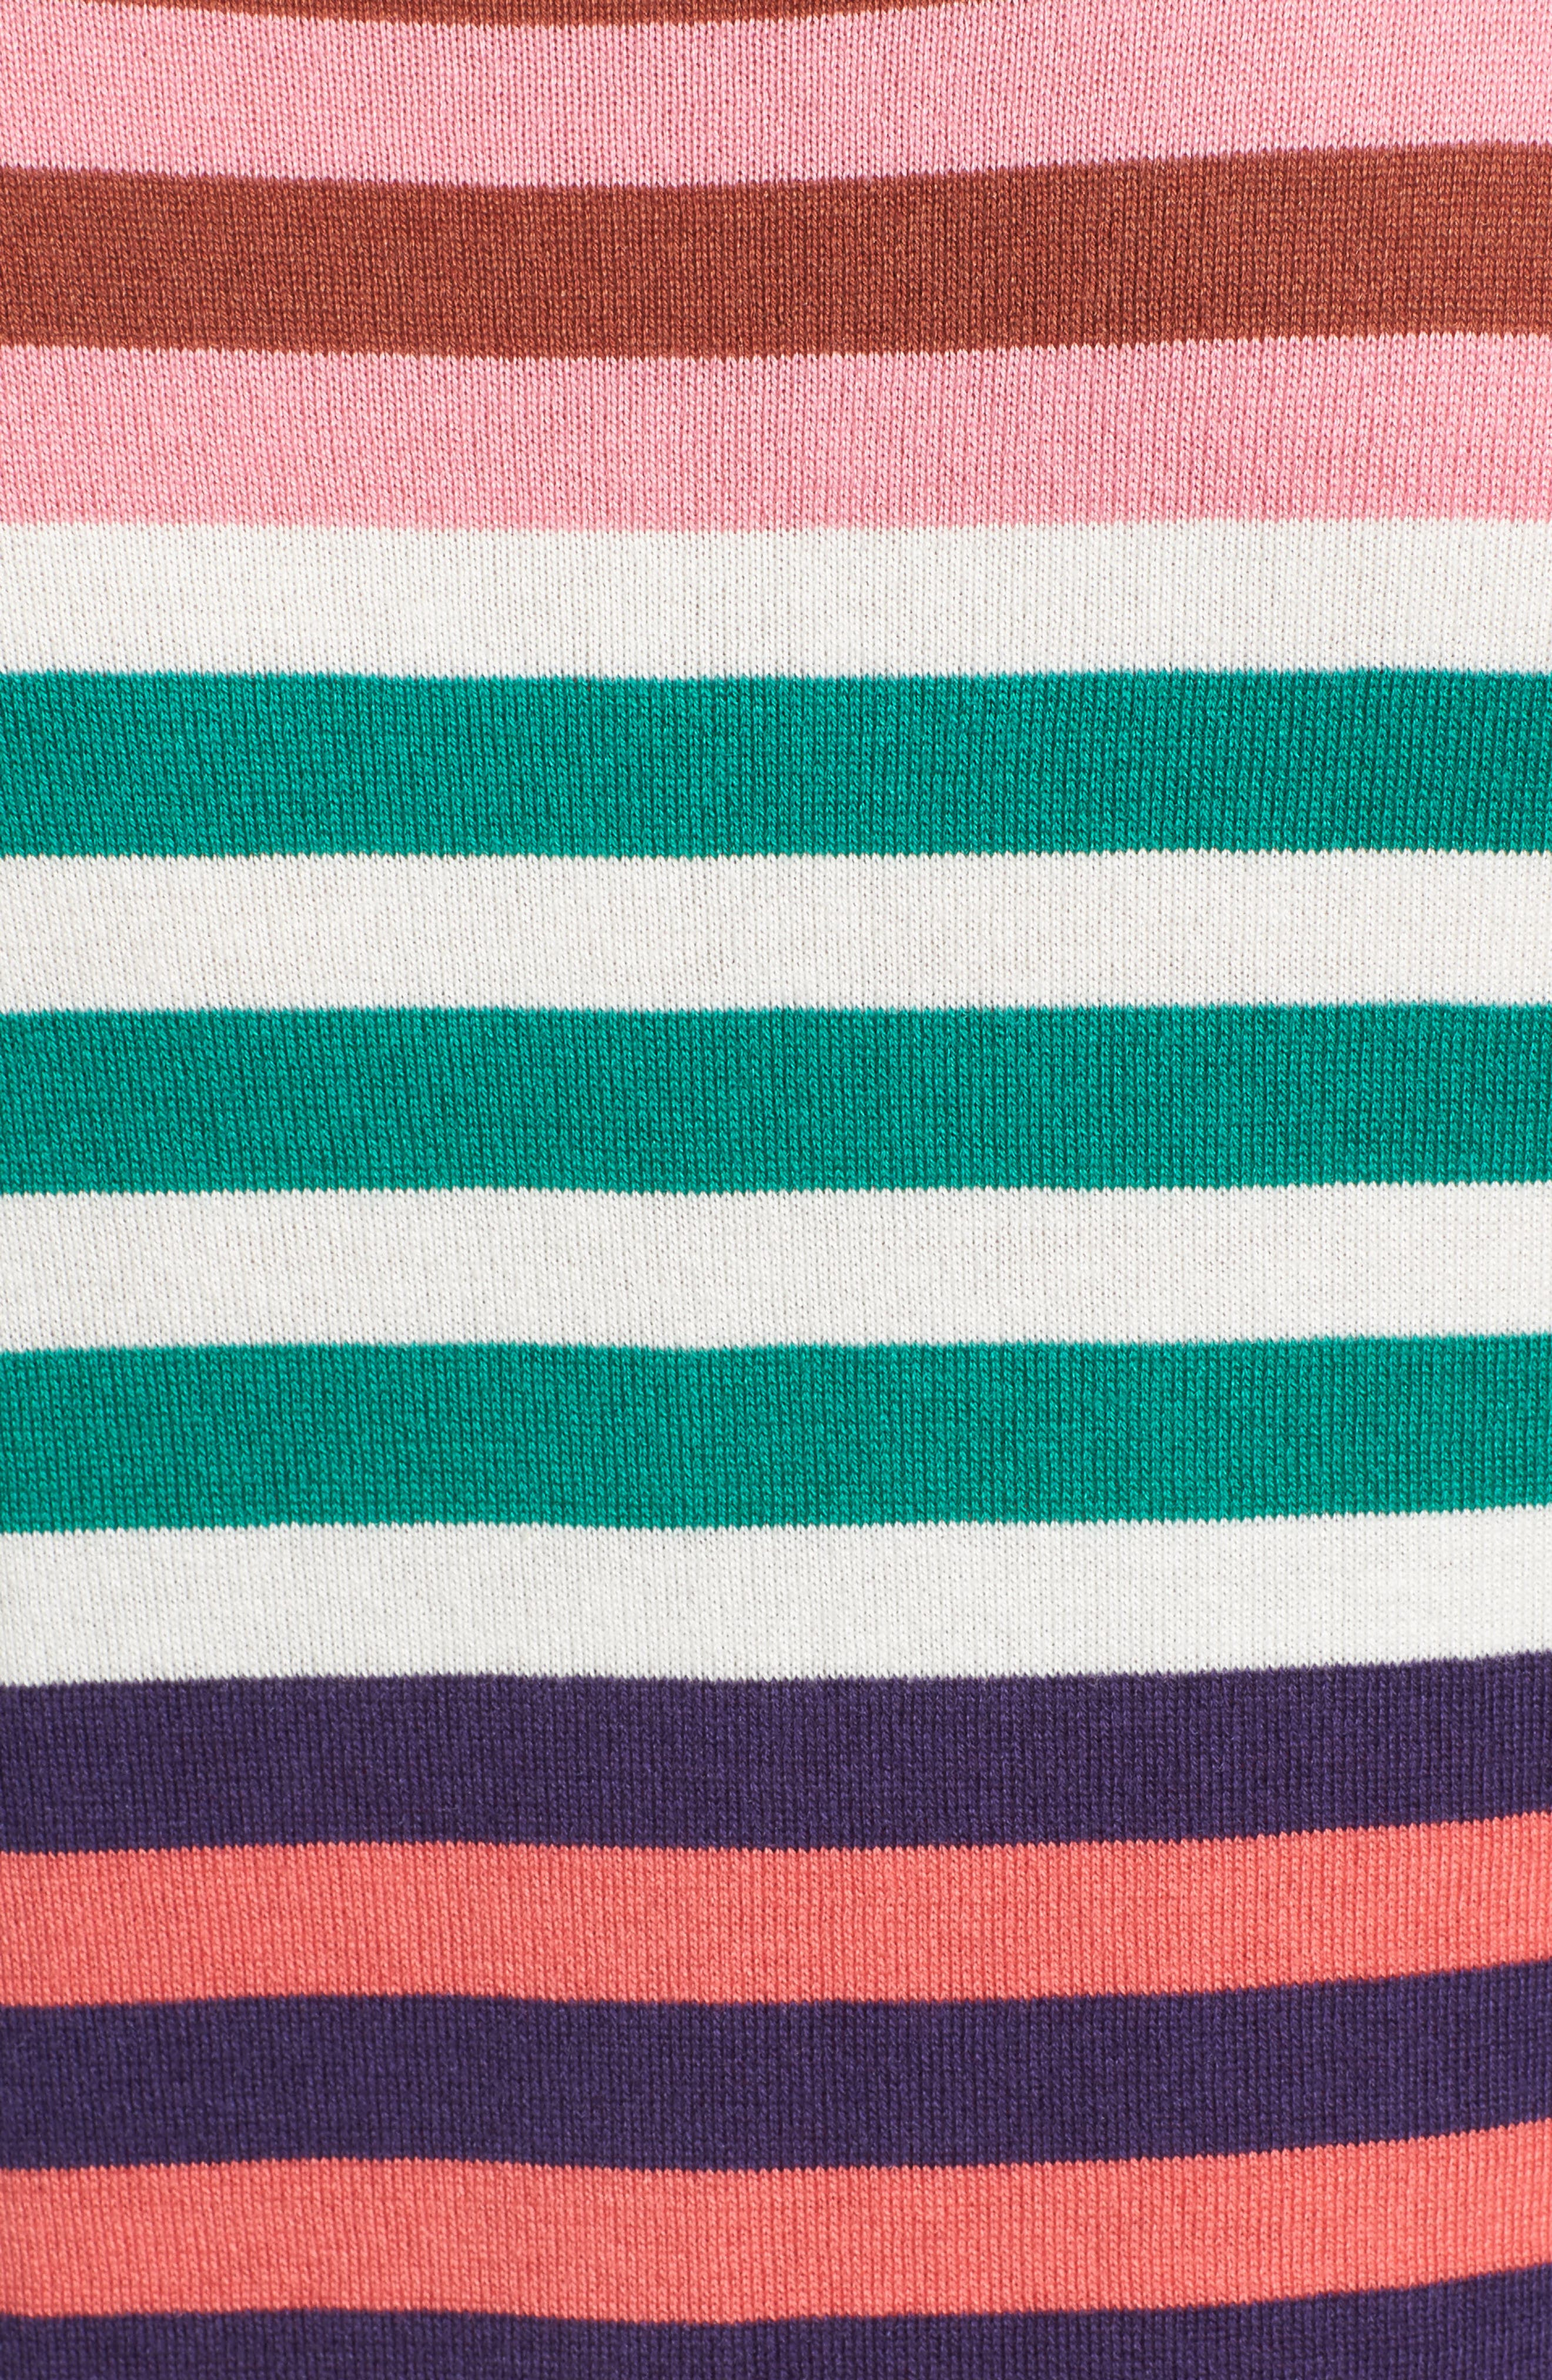 Colorblock Stripe Sweater,                             Alternate thumbnail 5, color,                             Coral Multi Stripe